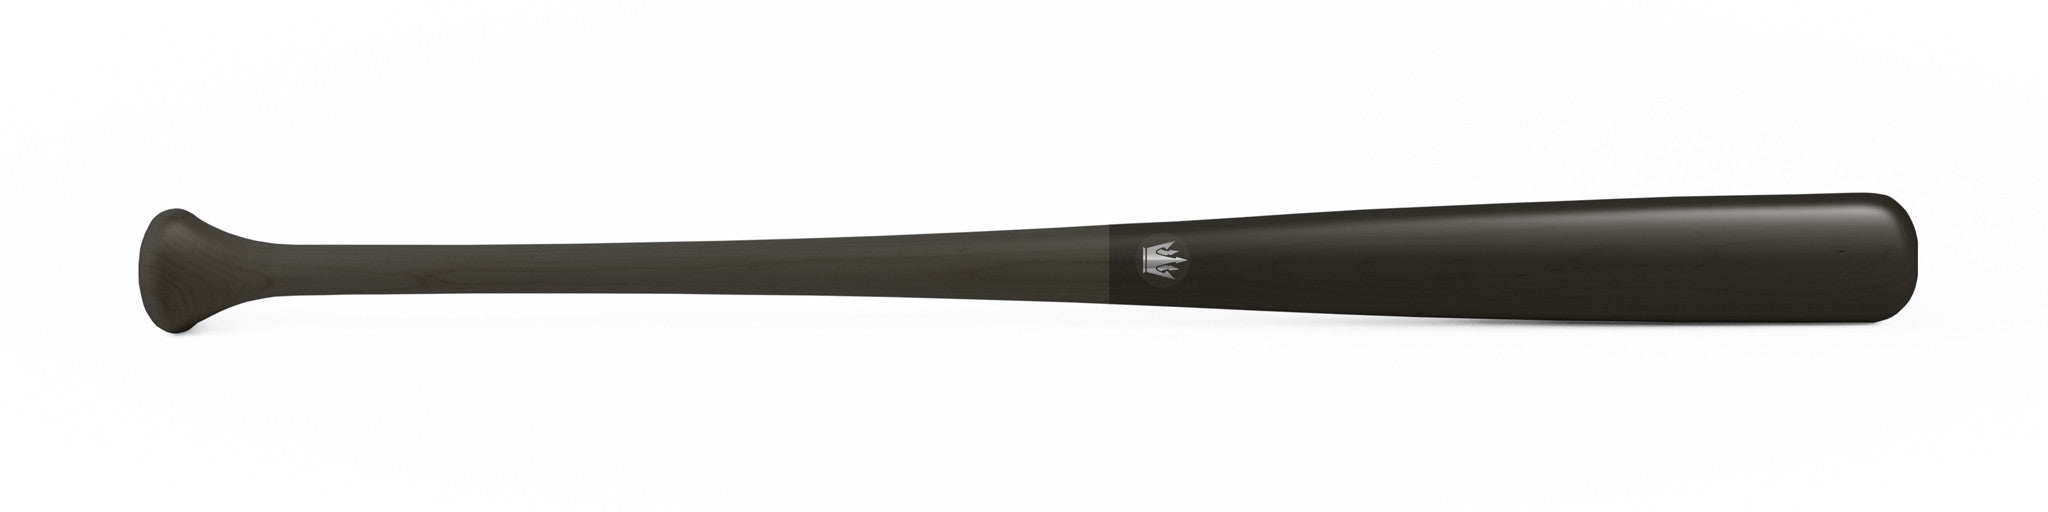 Wood bat - Birch model 280 Black Knight - 19